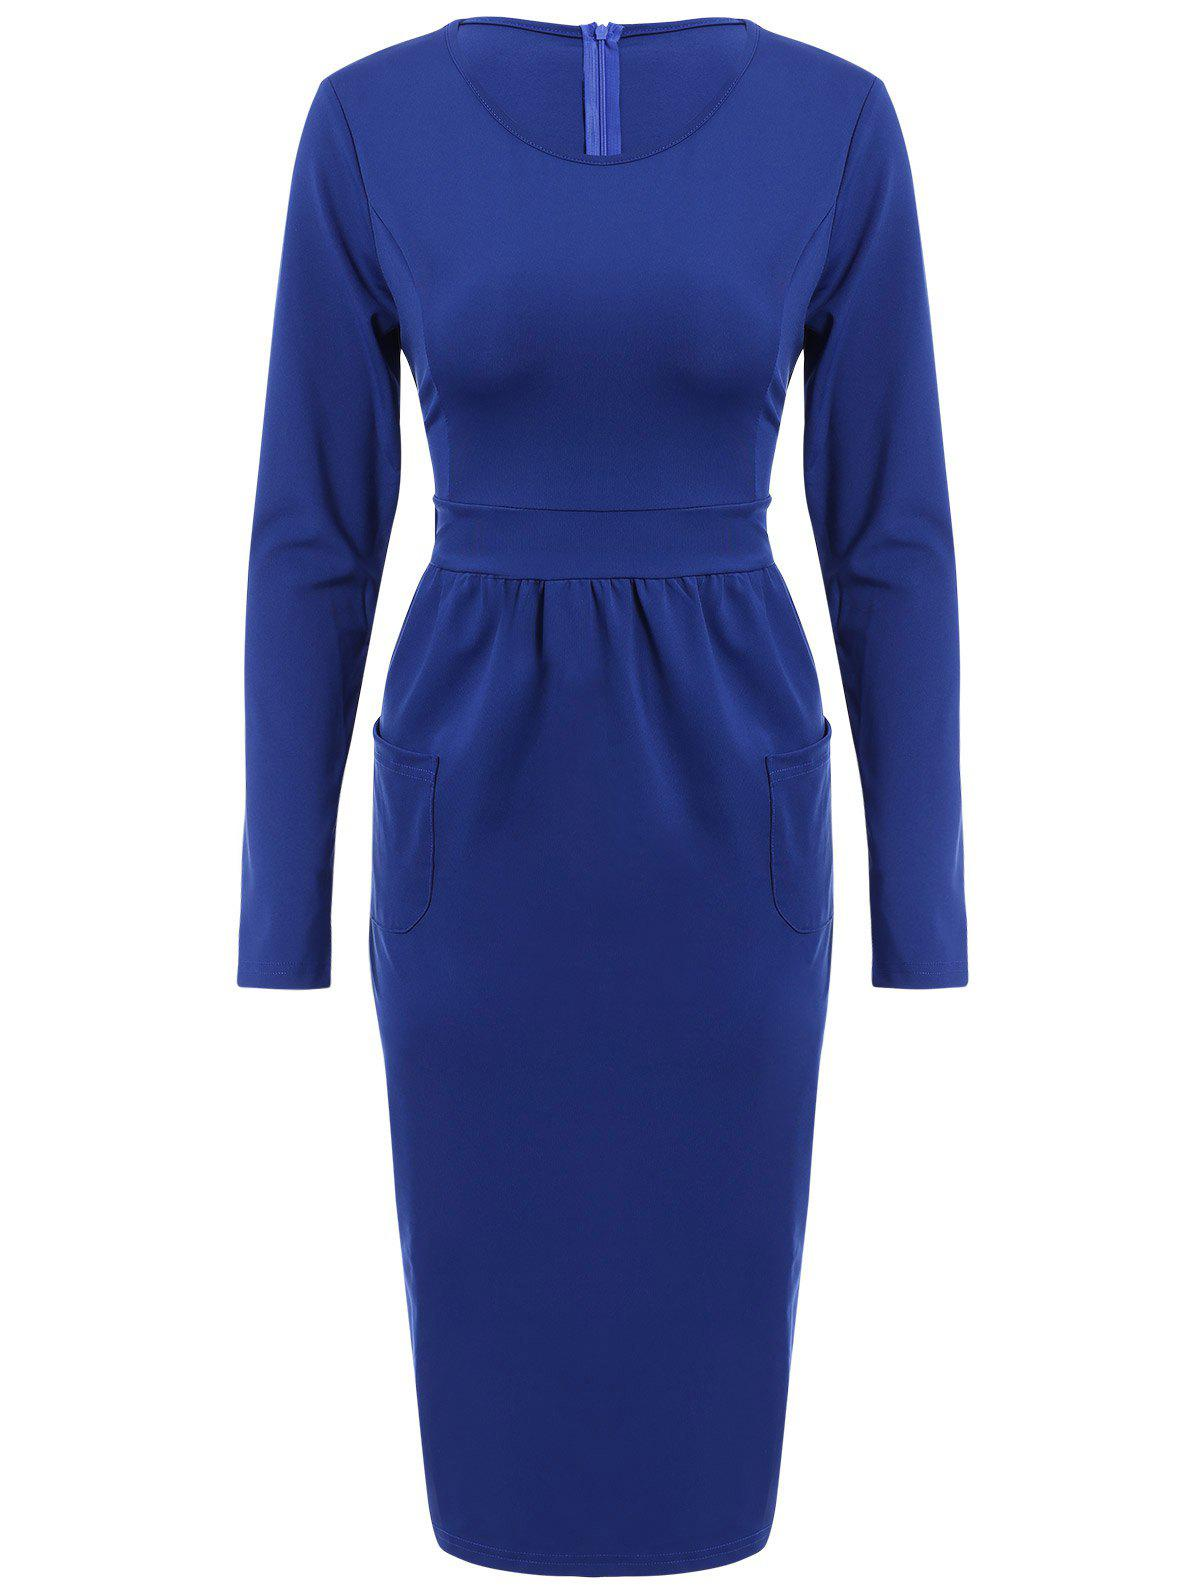 Graceful Solid Color Round Collar Long Sleeve Bodycon Midi Dress For Women - BLUE M